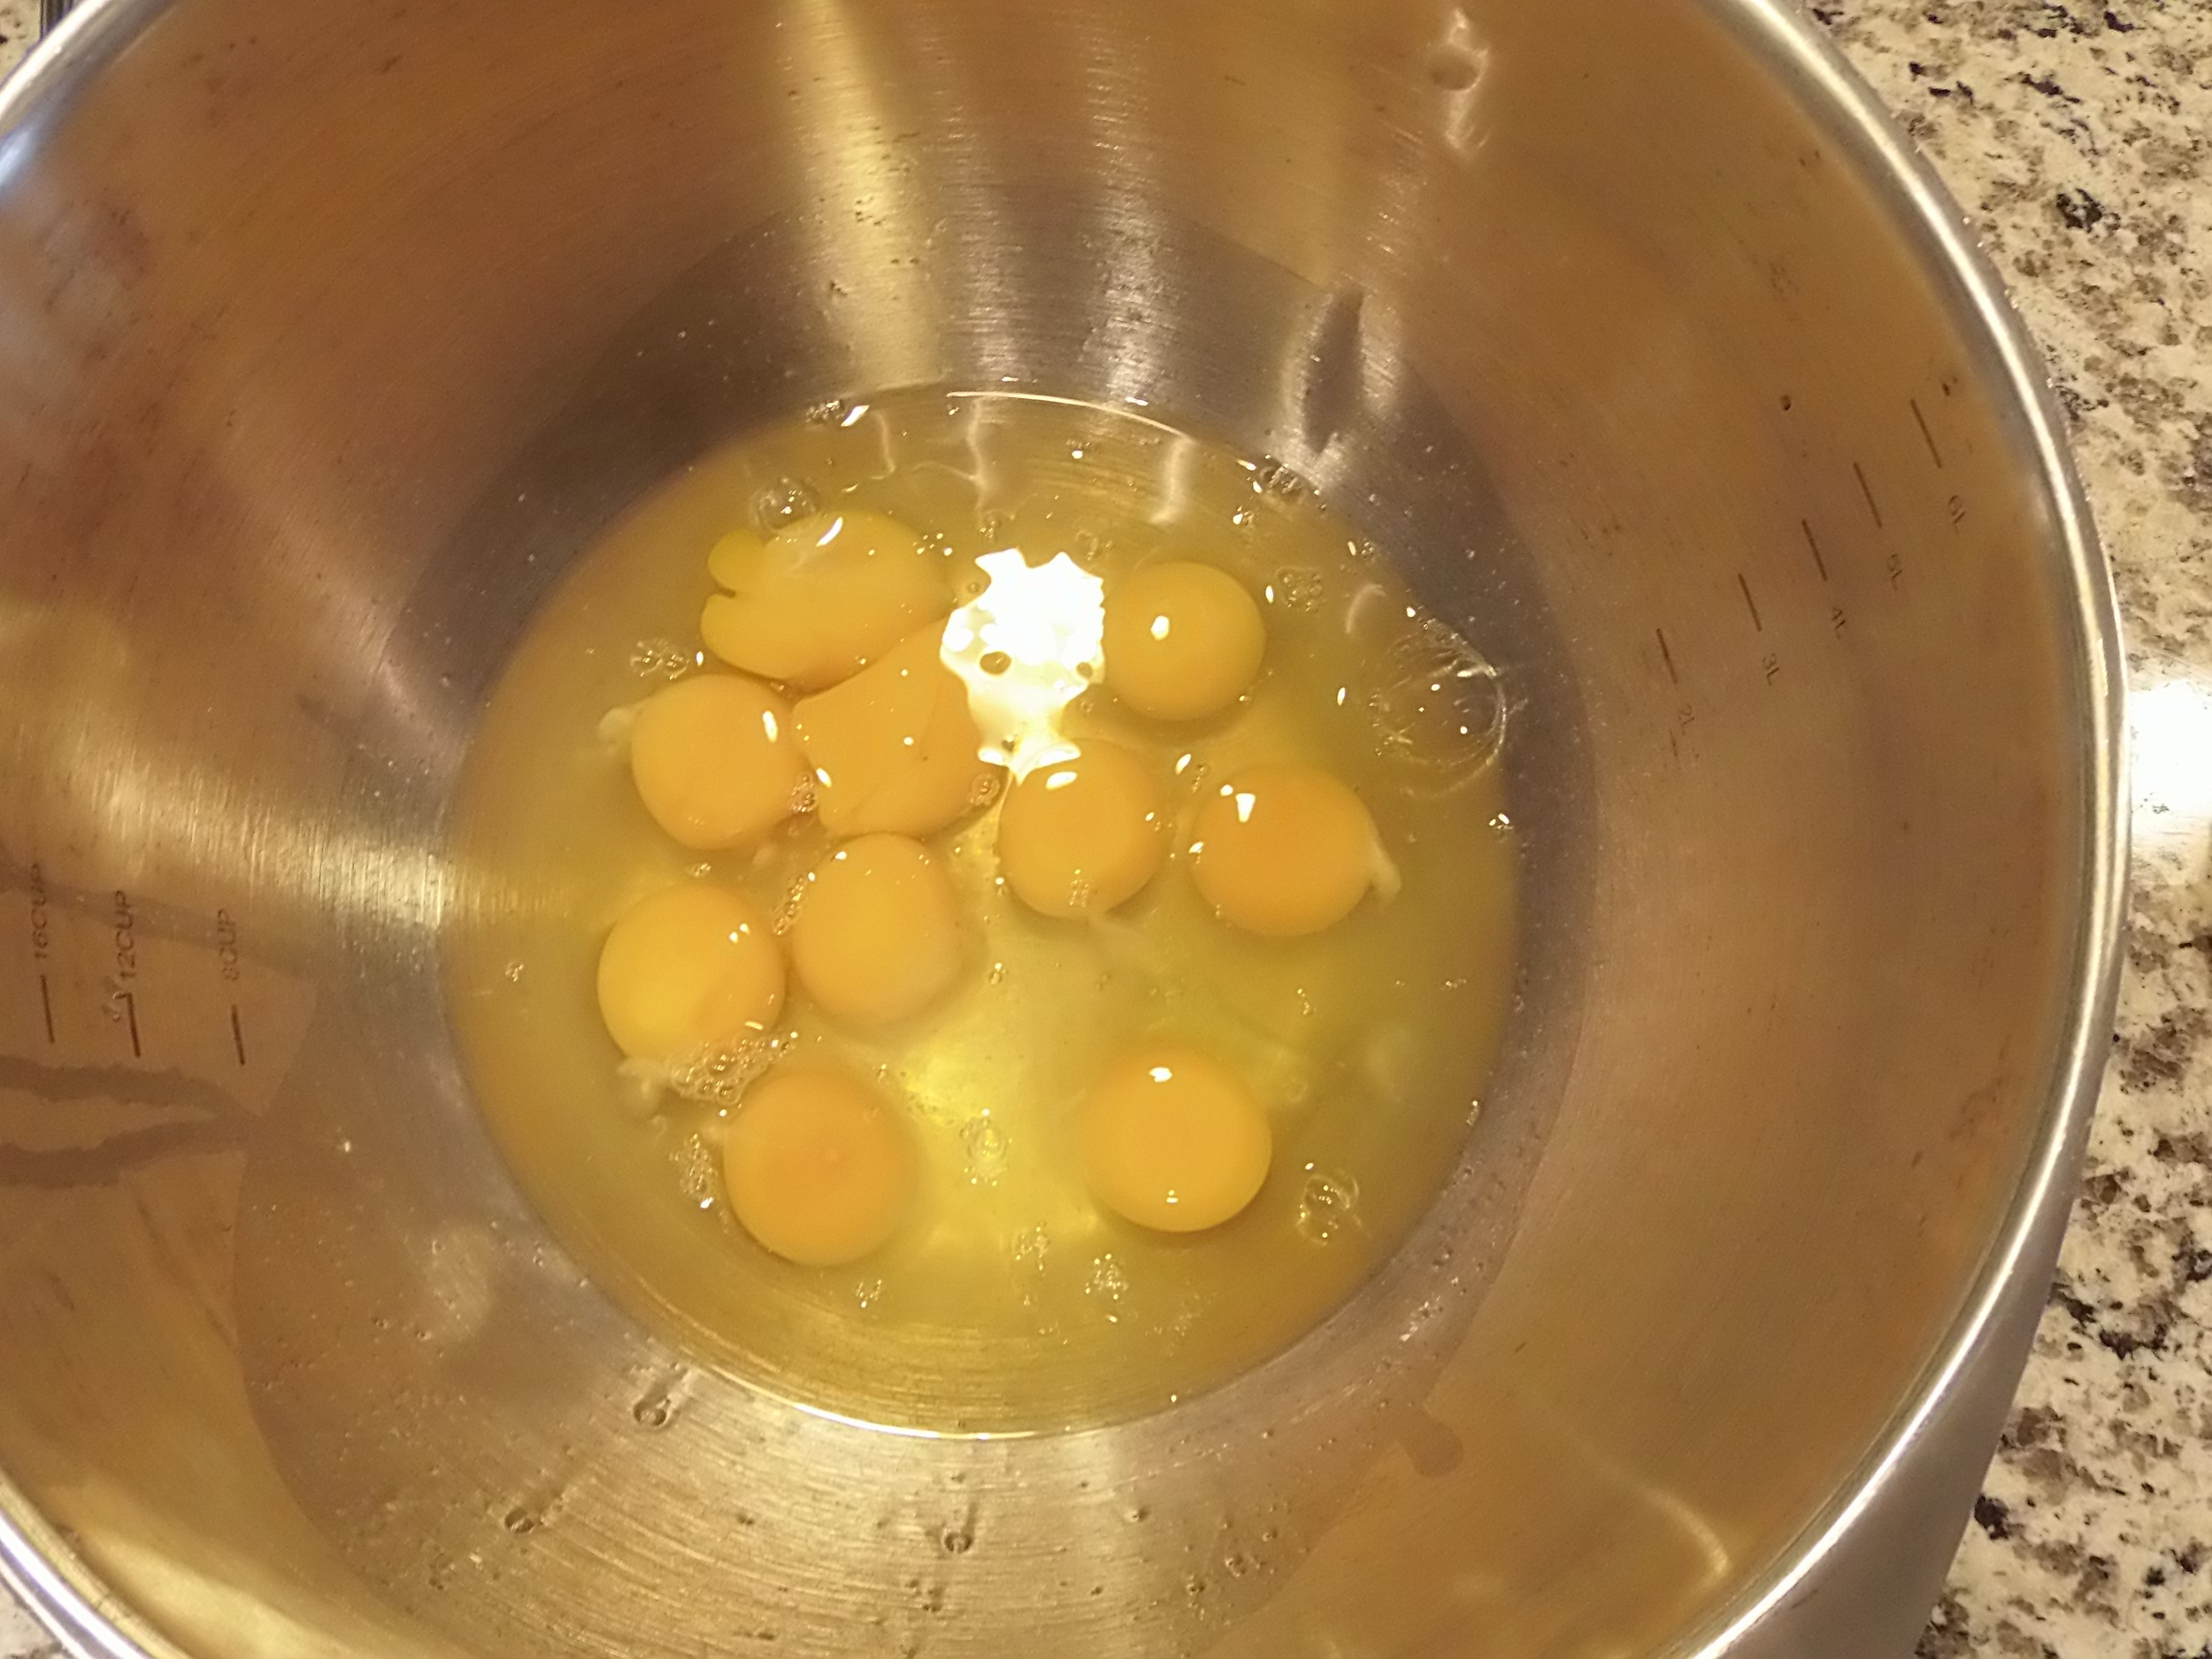 Then I cracked 12 eggs into a bowl...